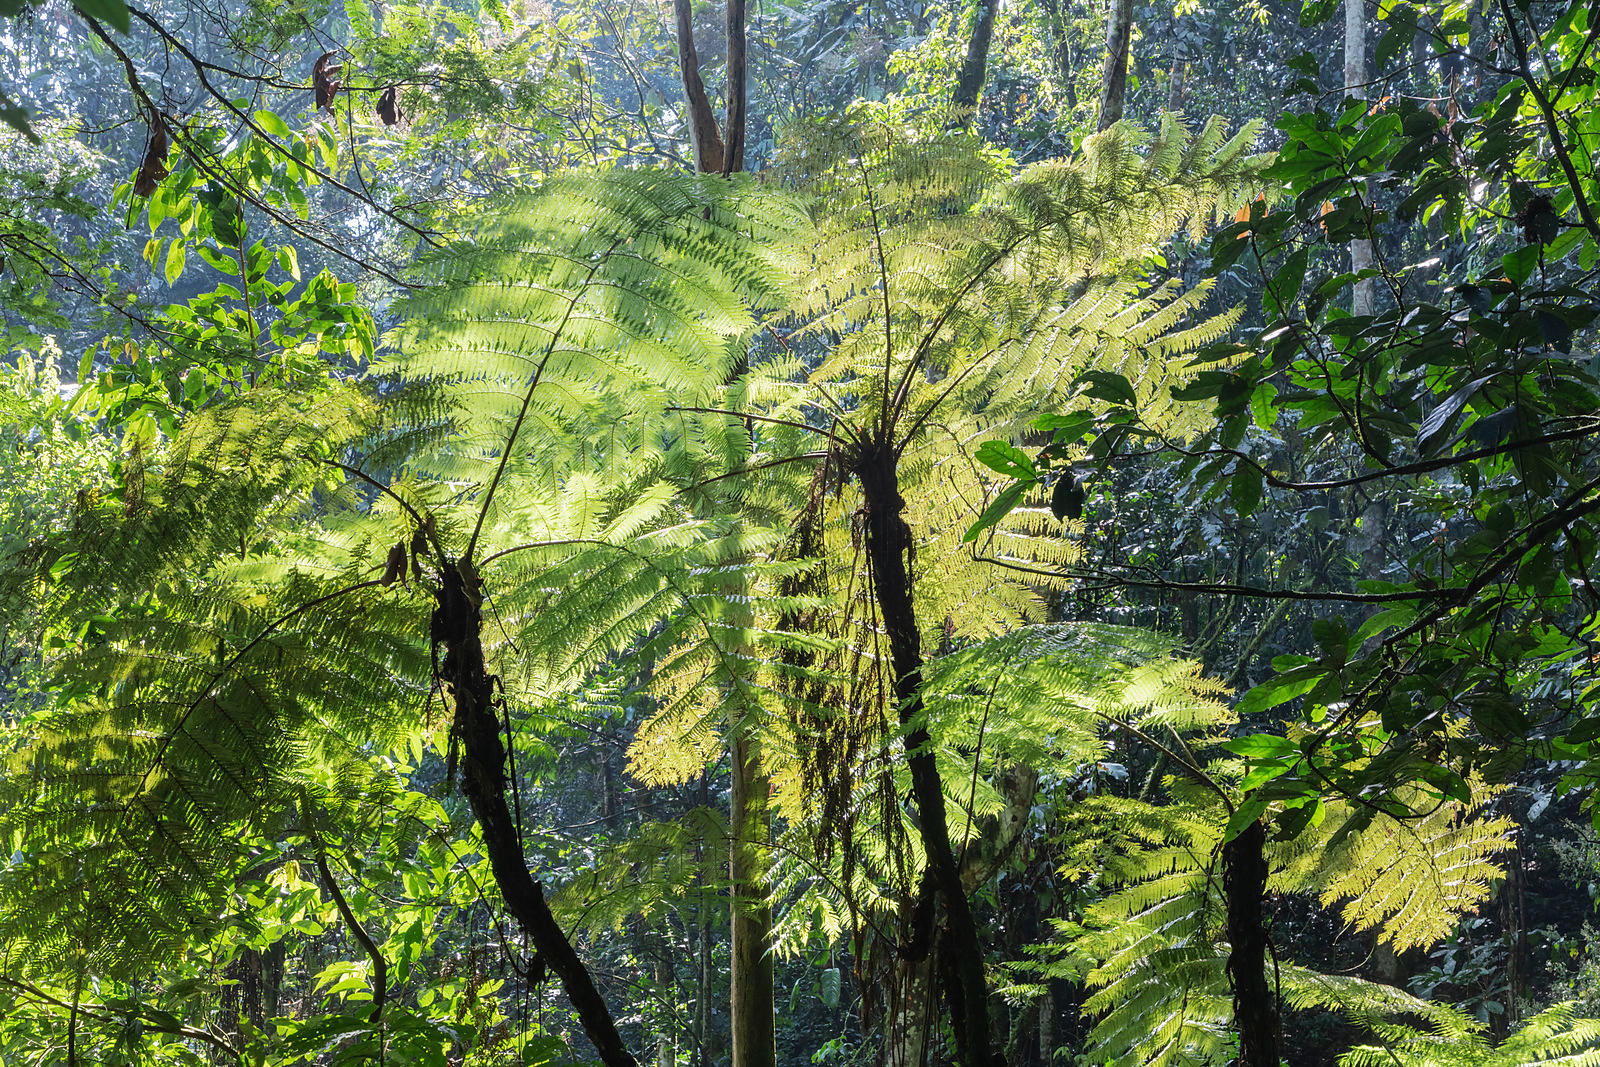 Giant Ferns in the Forest